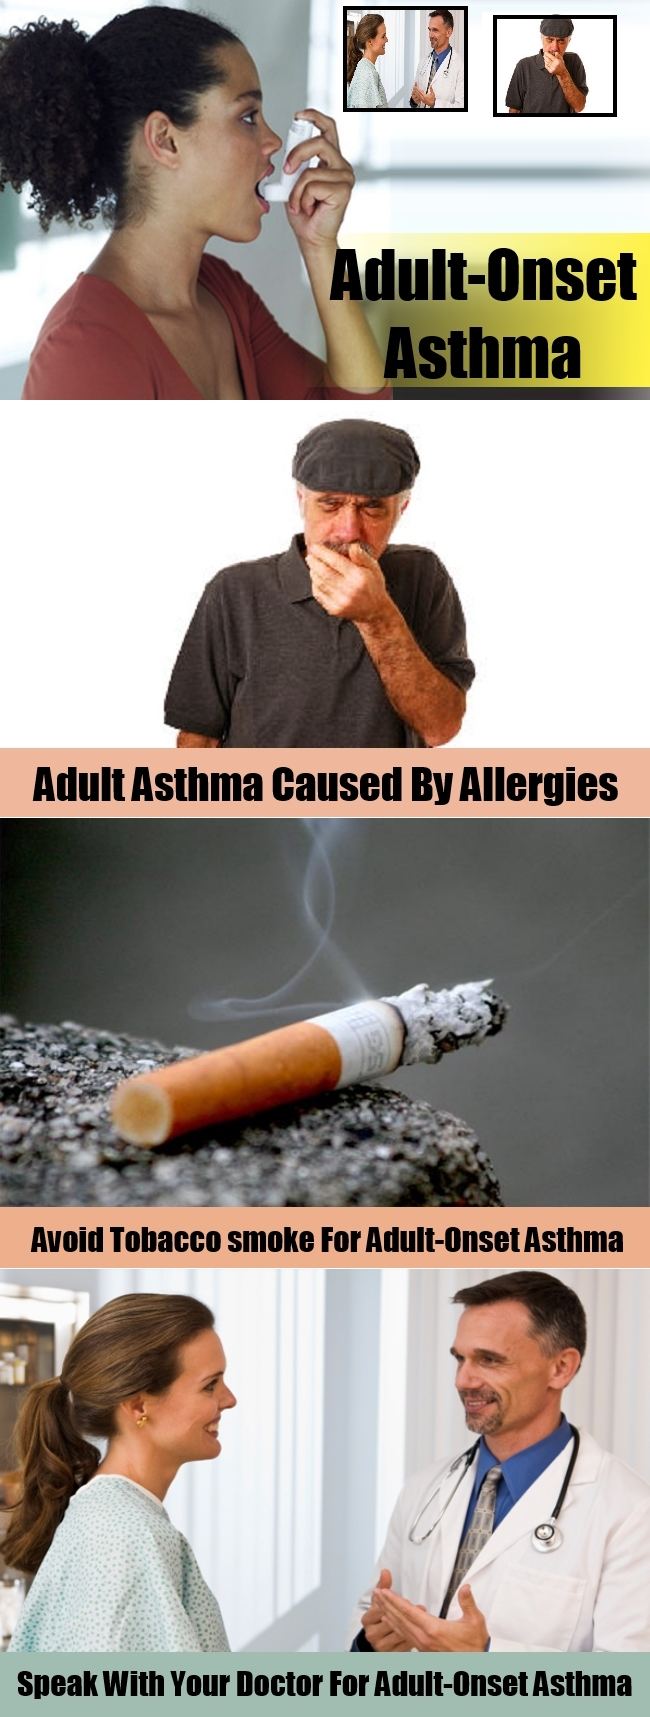 Adult Onset Asthma